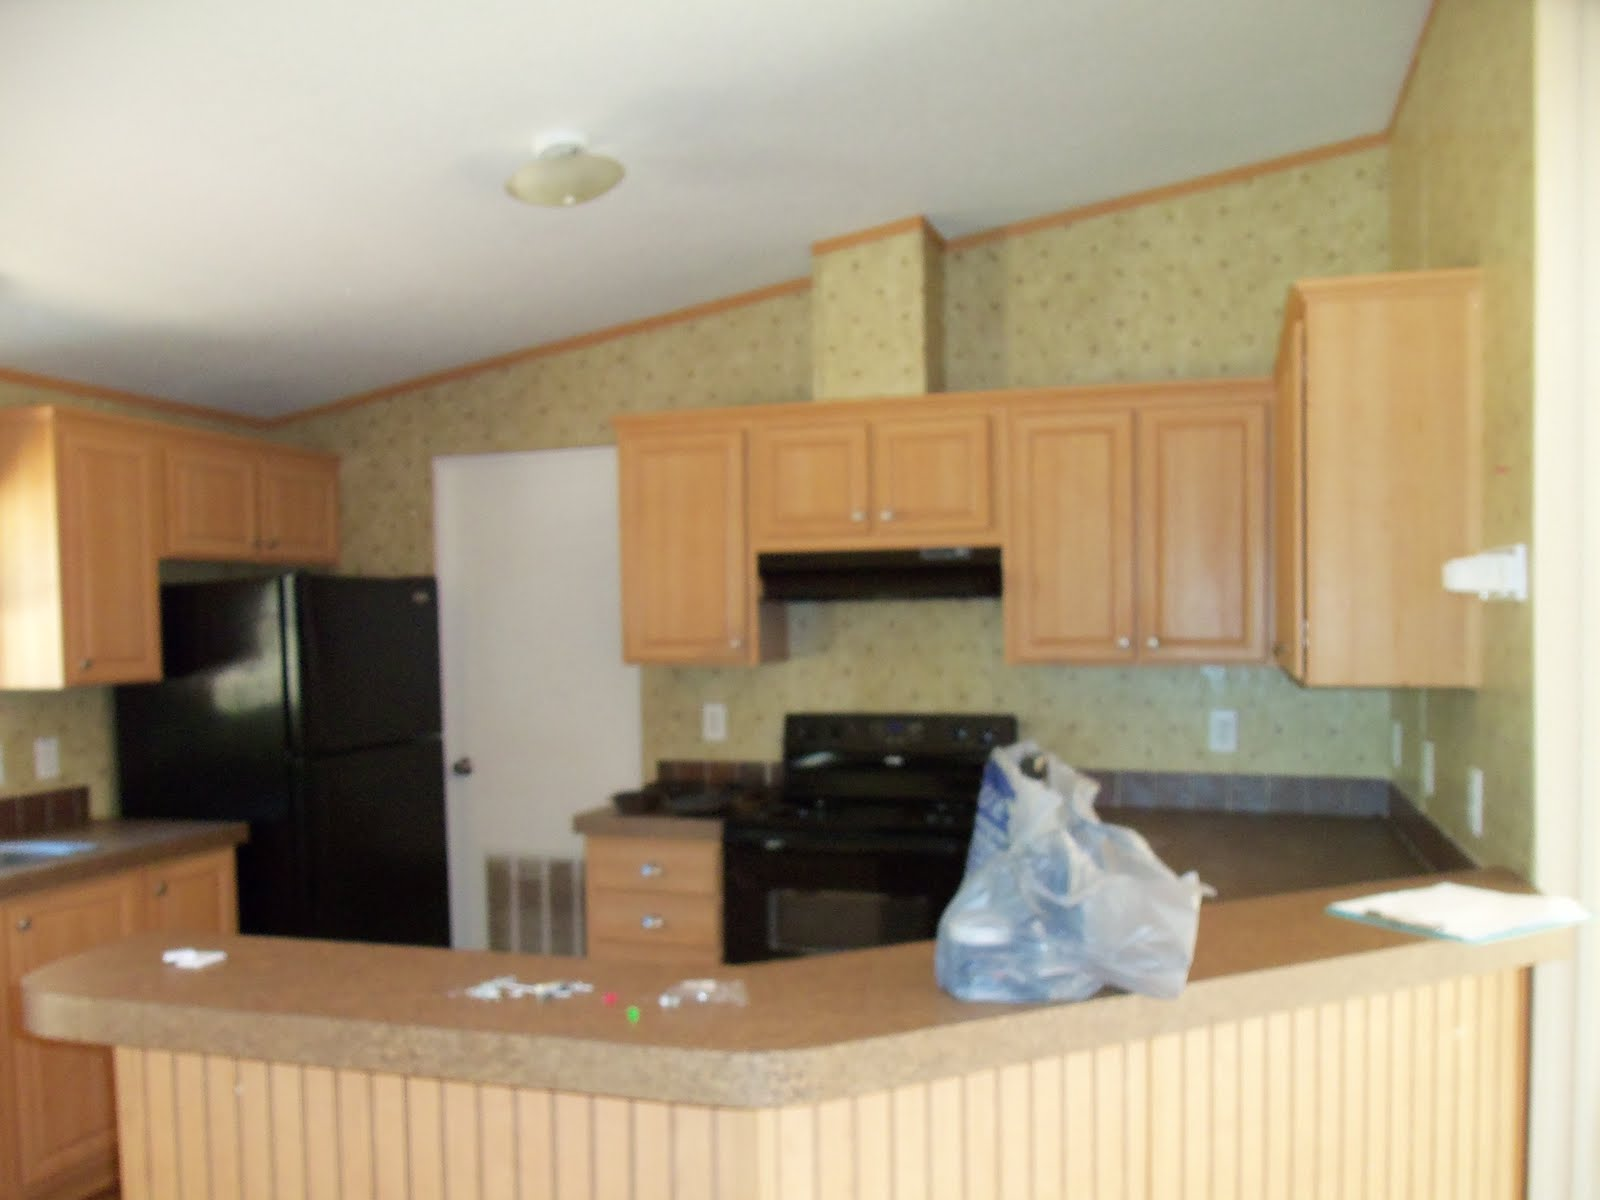 Mobile home makeover original interior pics How to do a home makeover